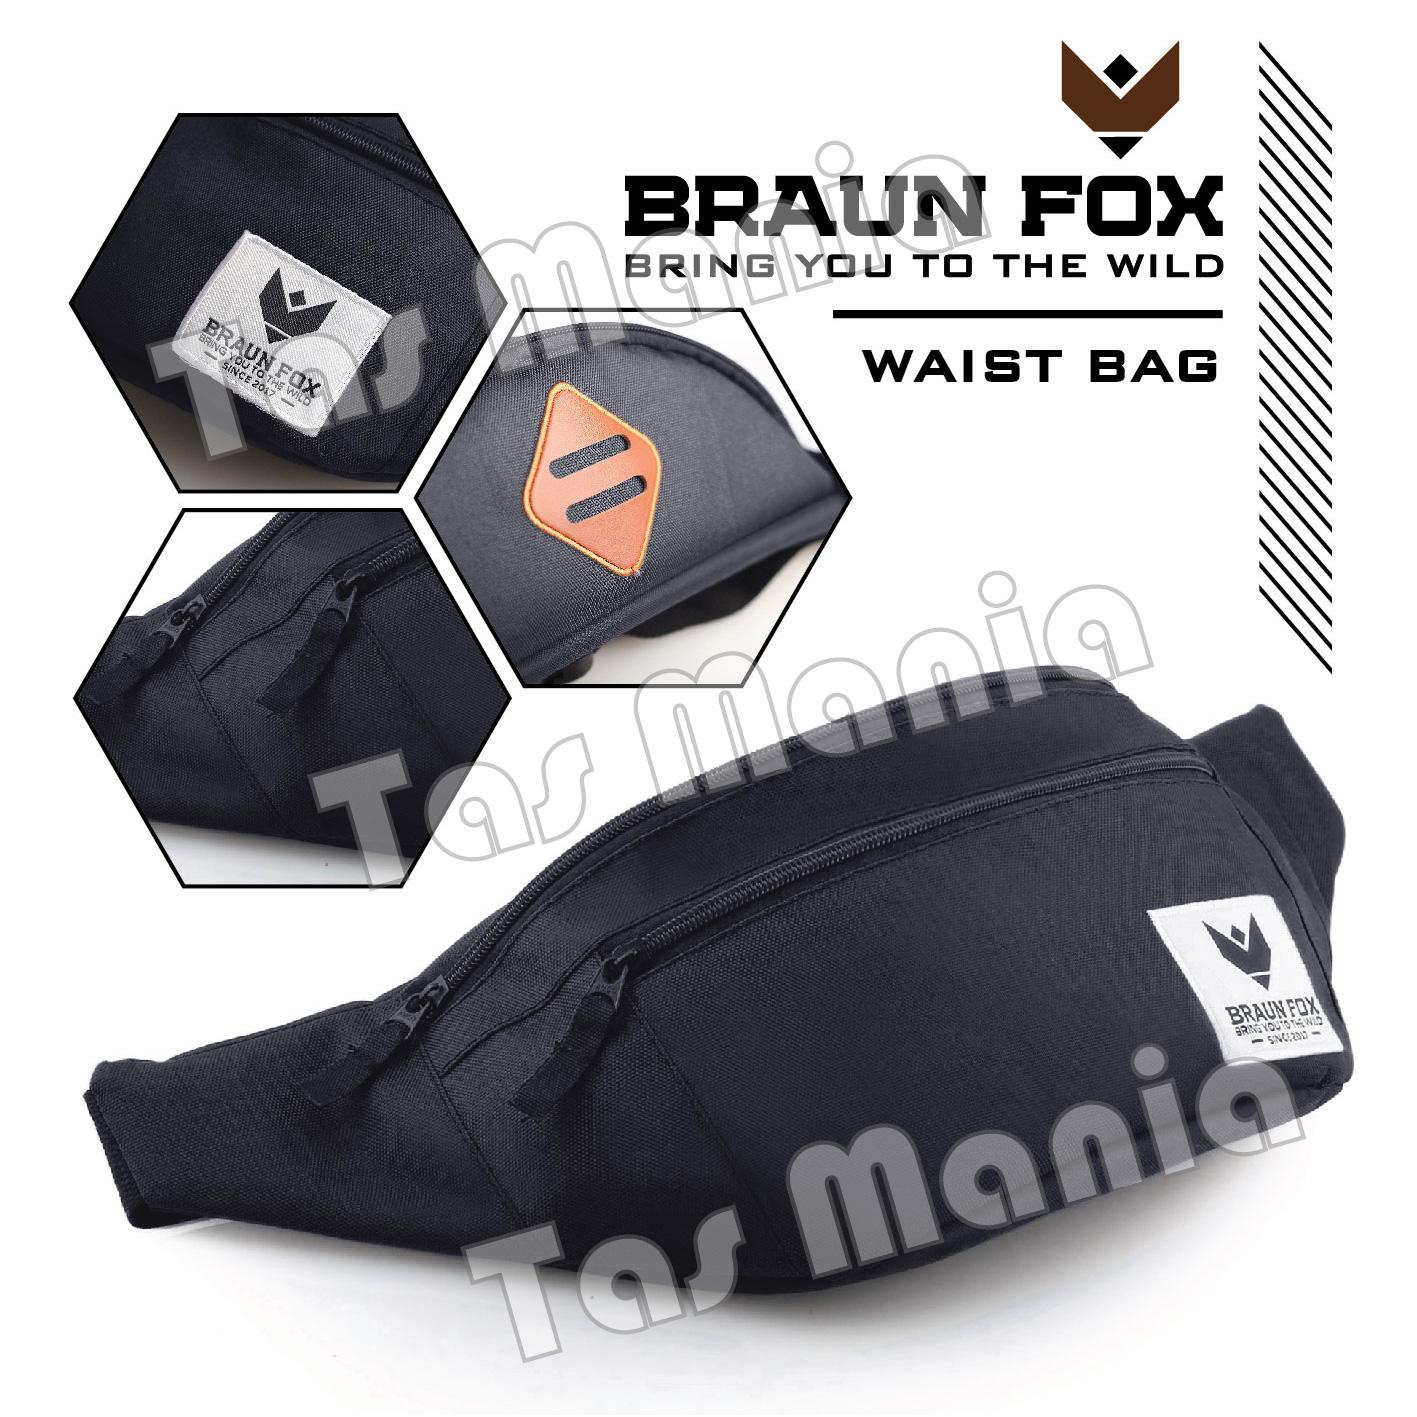 Buy Sell Cheapest Best Tas Pinggang Quality Product Deals Tactical A318 Braun Fox Seattle Waistbag Navy Selempang Pria Groovy Multifungsi Sandang Messenger Slempang Never Ink